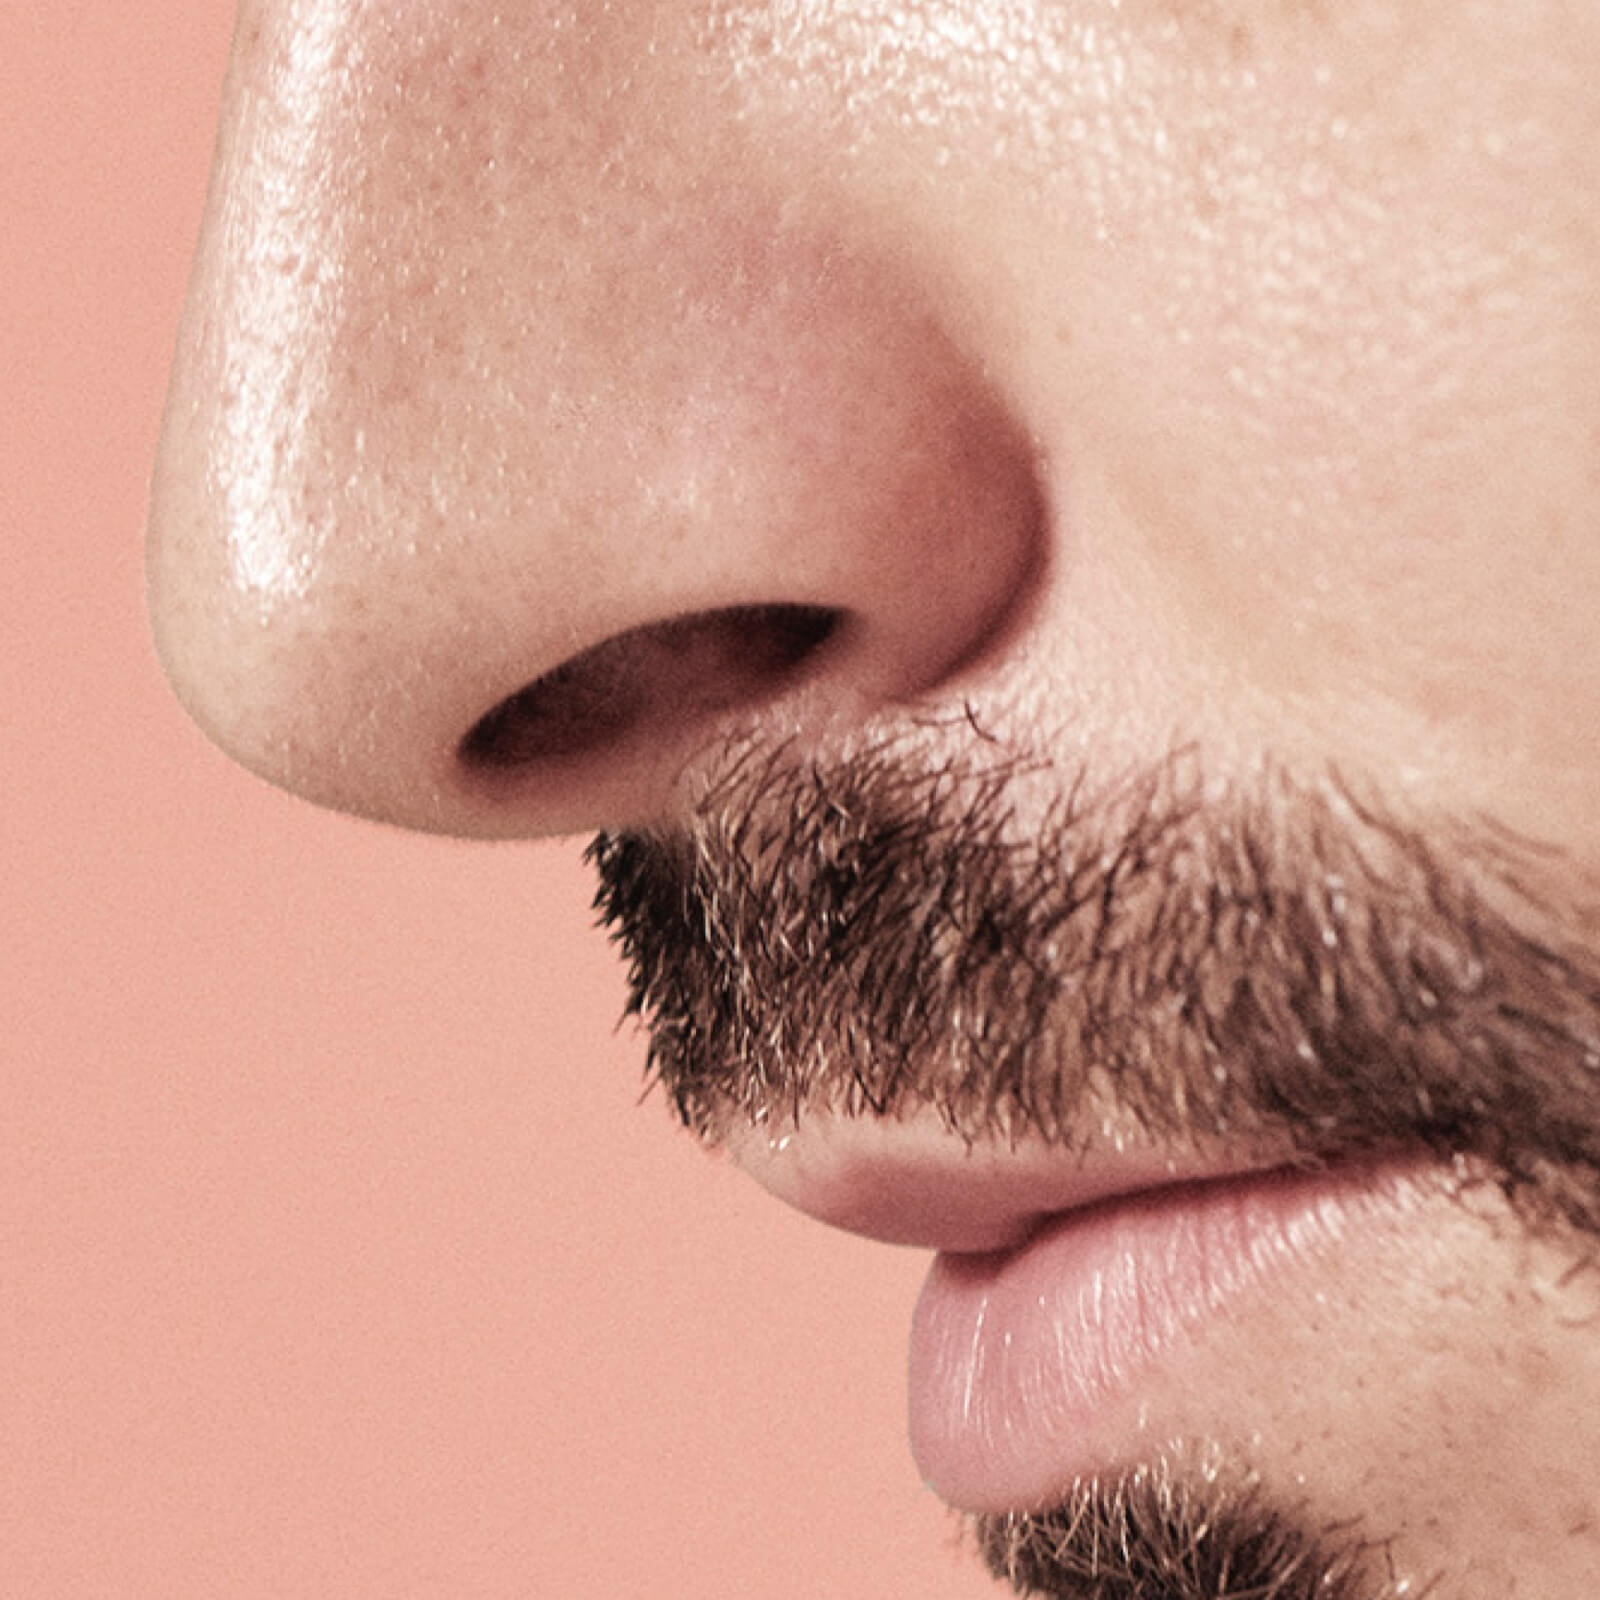 Nose Bump Overview - Causes, Treatment Options, and More   AEDIT